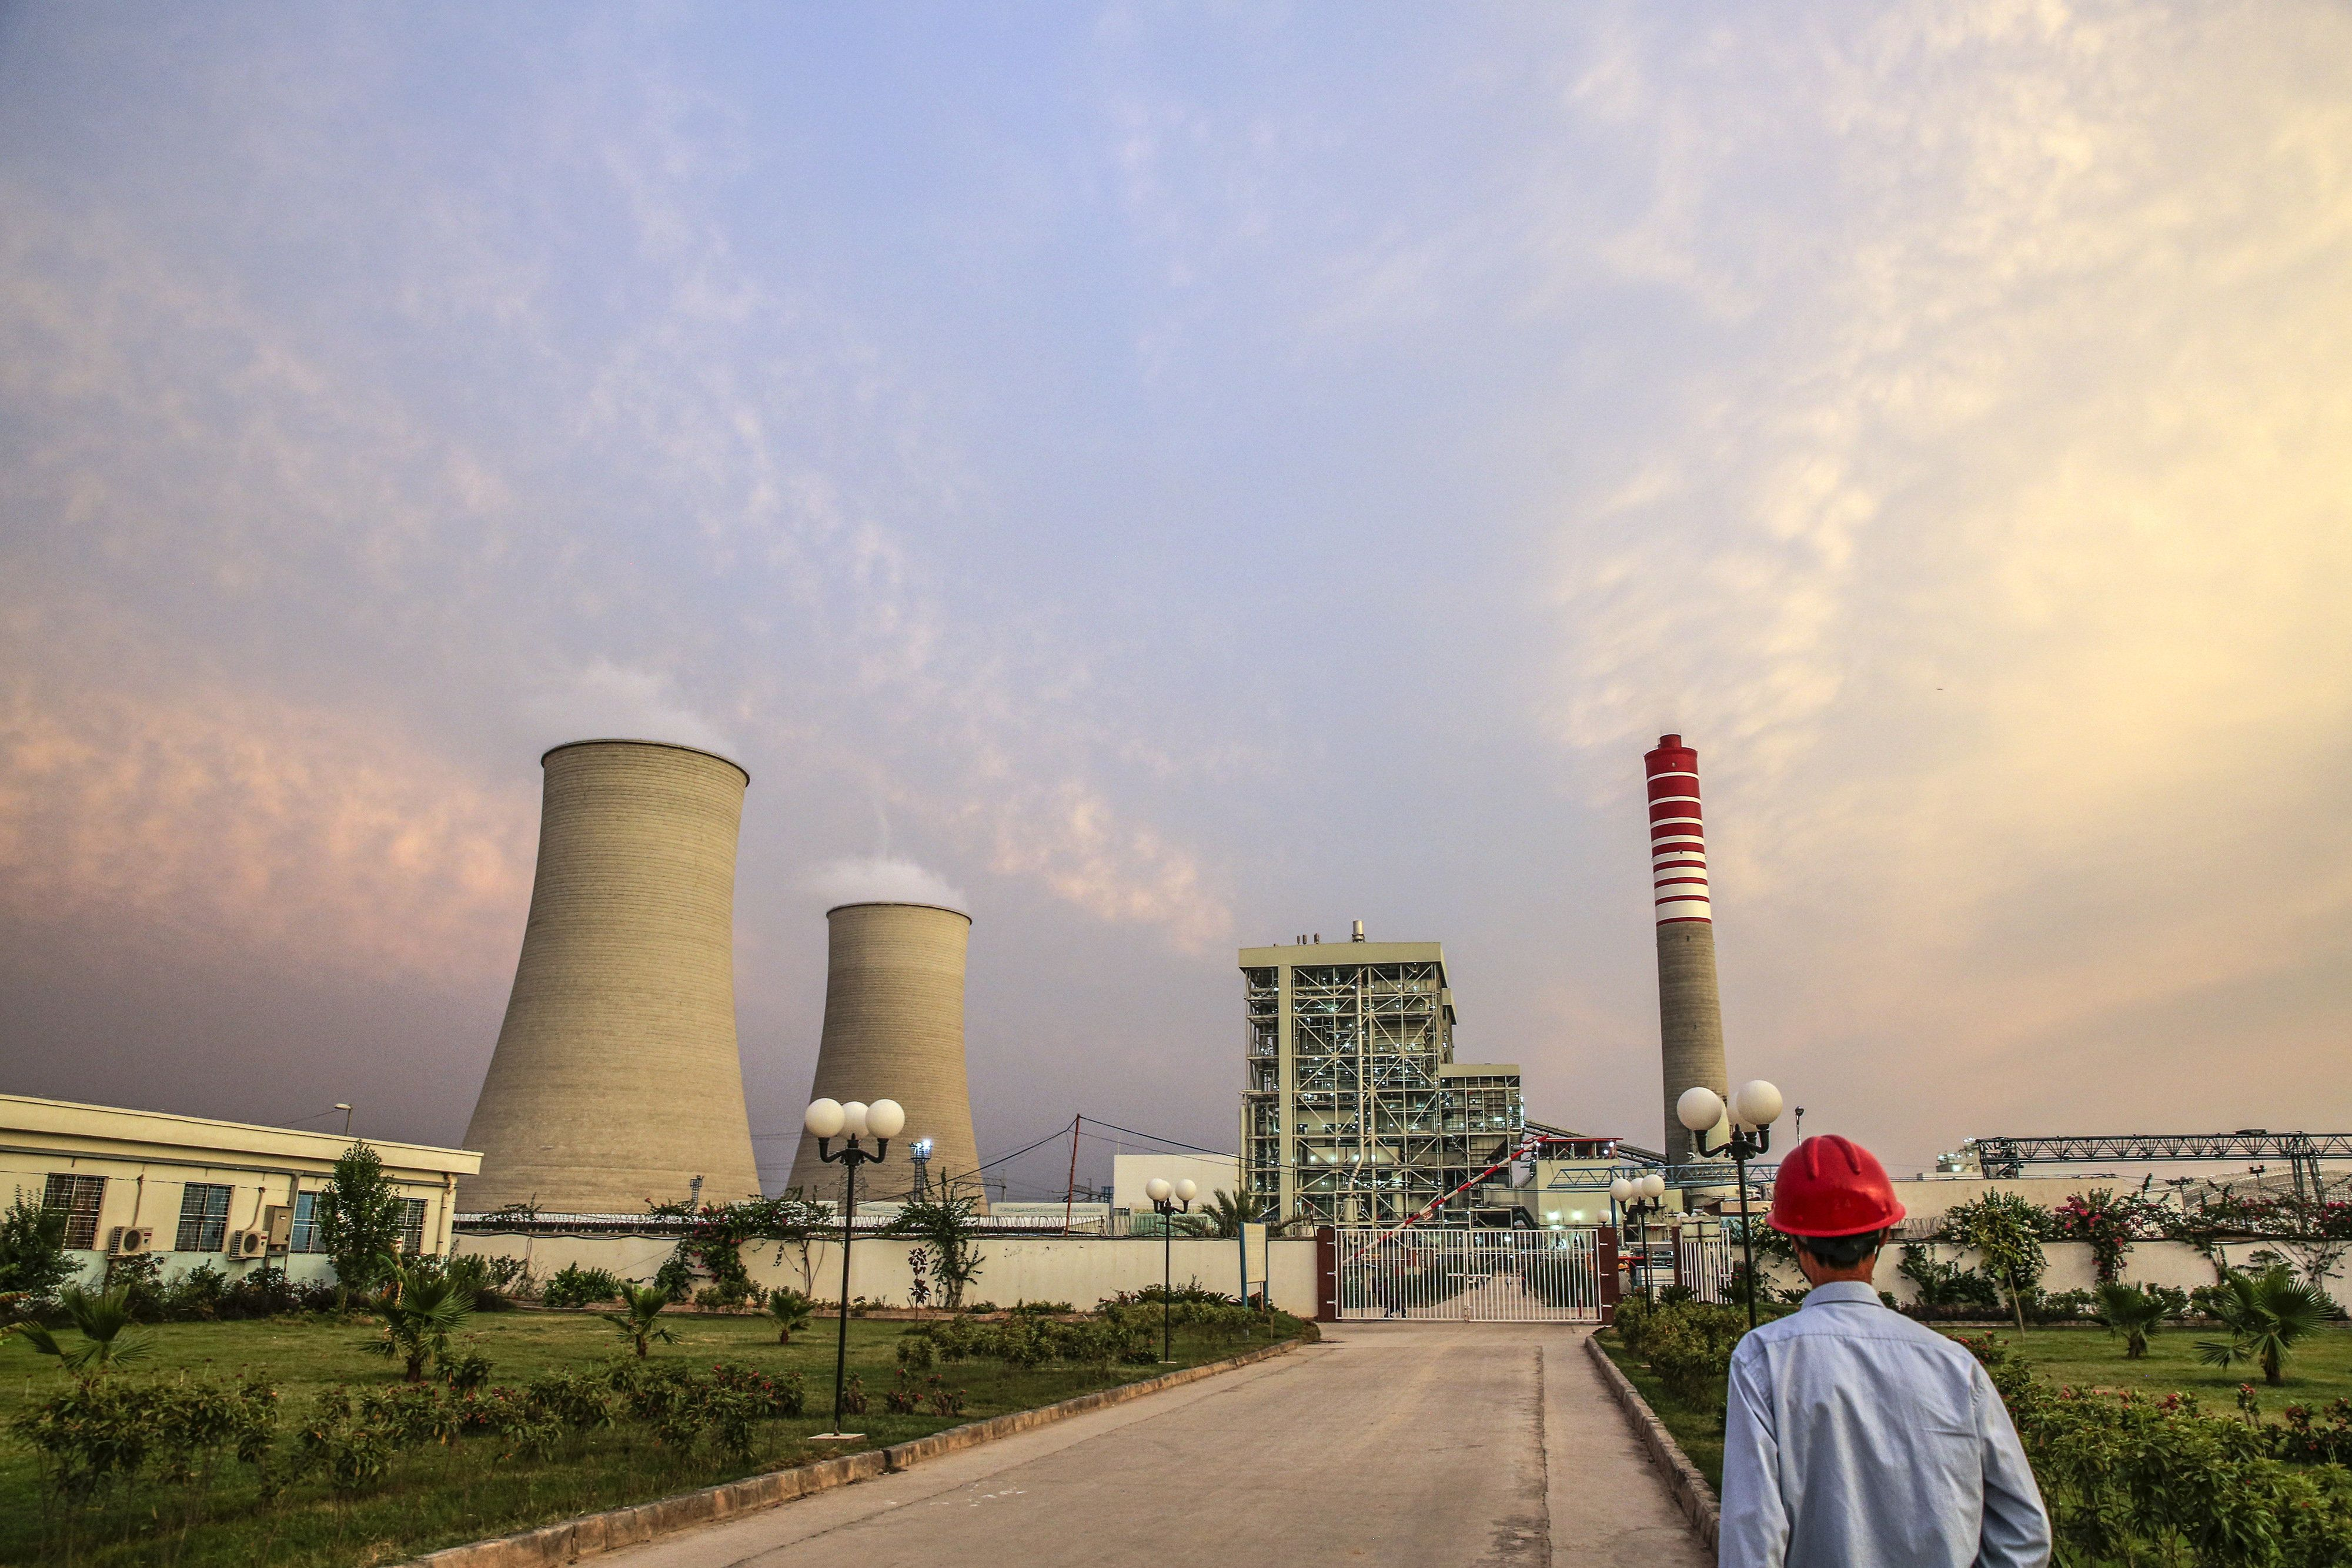 A Chinese worker walks along a path at the Sahiwal coal power plant, owned by China's state-owned Huaneng Shandong Rui Group,